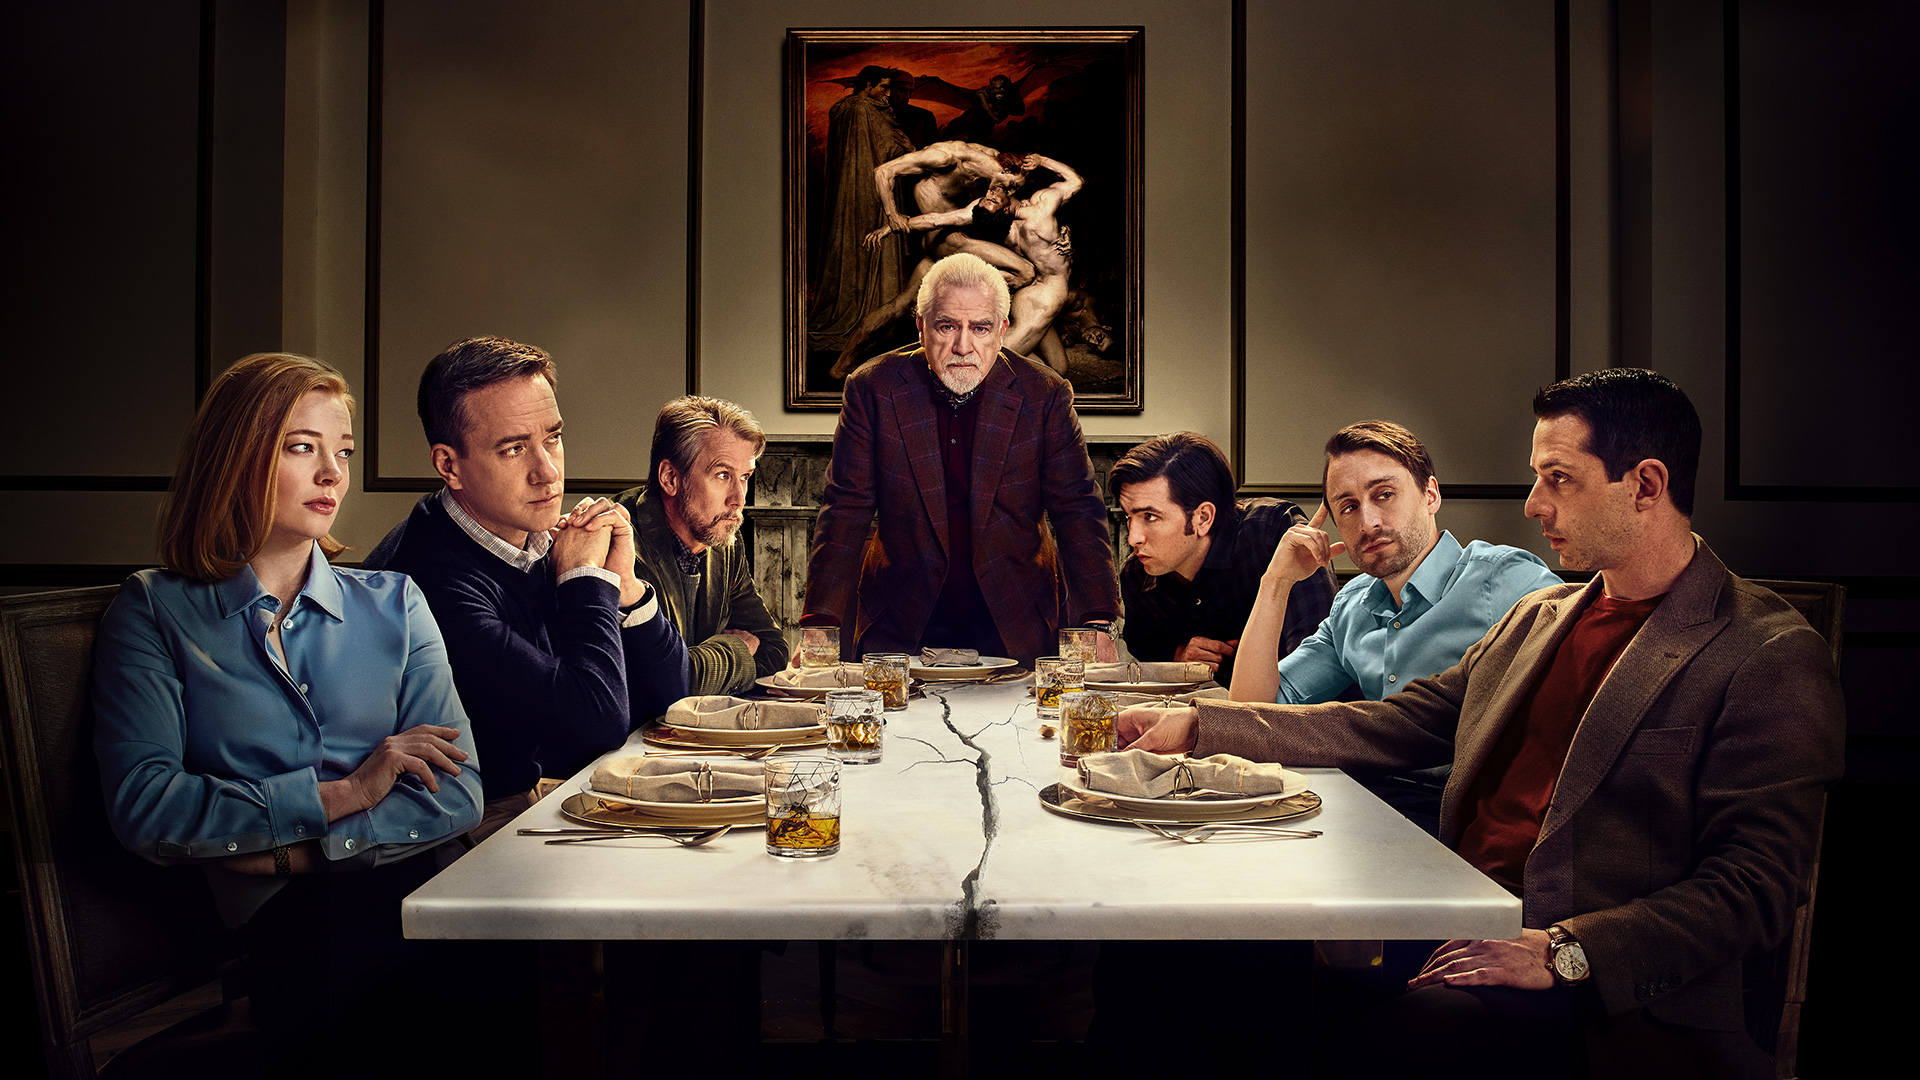 The cast of Succession poses at a dinner table. A crack spreads across the table itself.